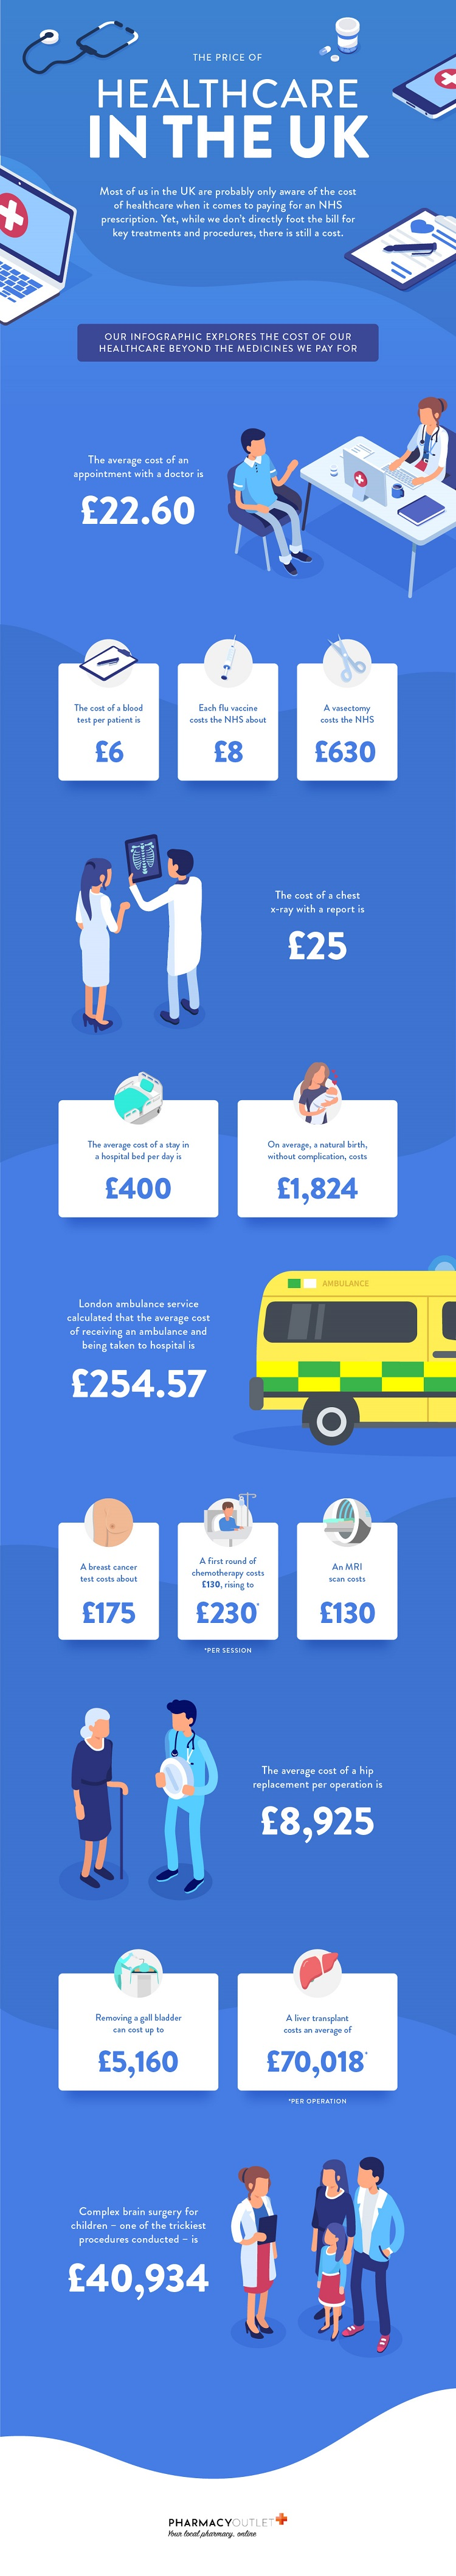 NHS healthcare costs infographic